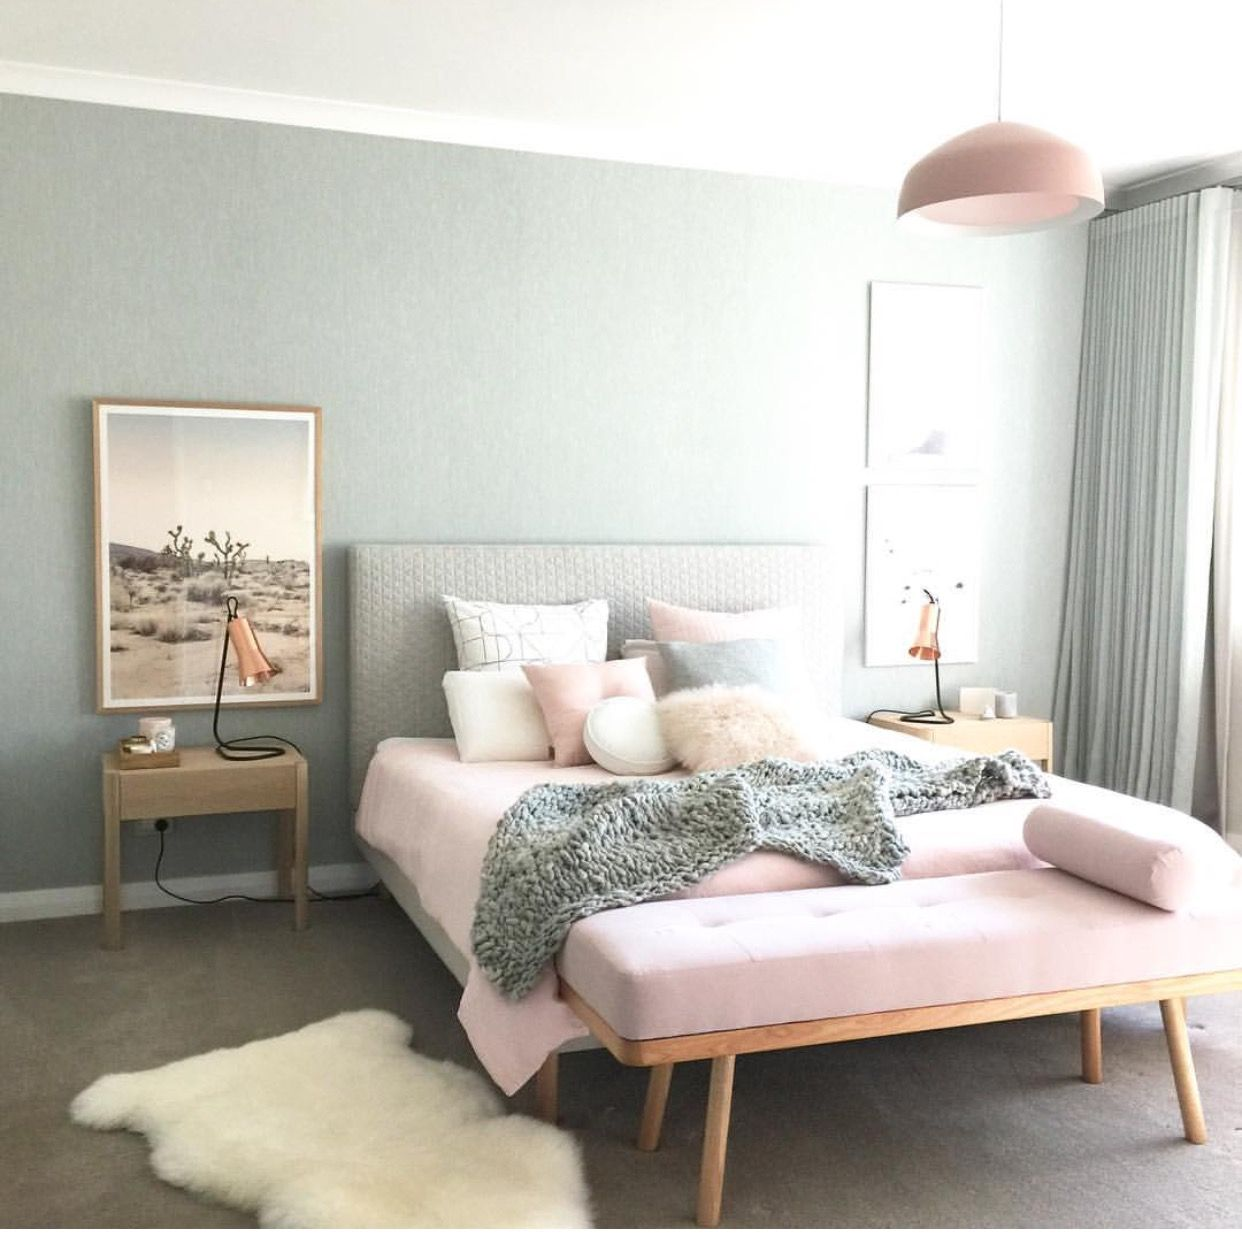 Pastel Bedroom Ideas Du Blush Dans La Chambre En 2019 For The Home Pastel Bedroom